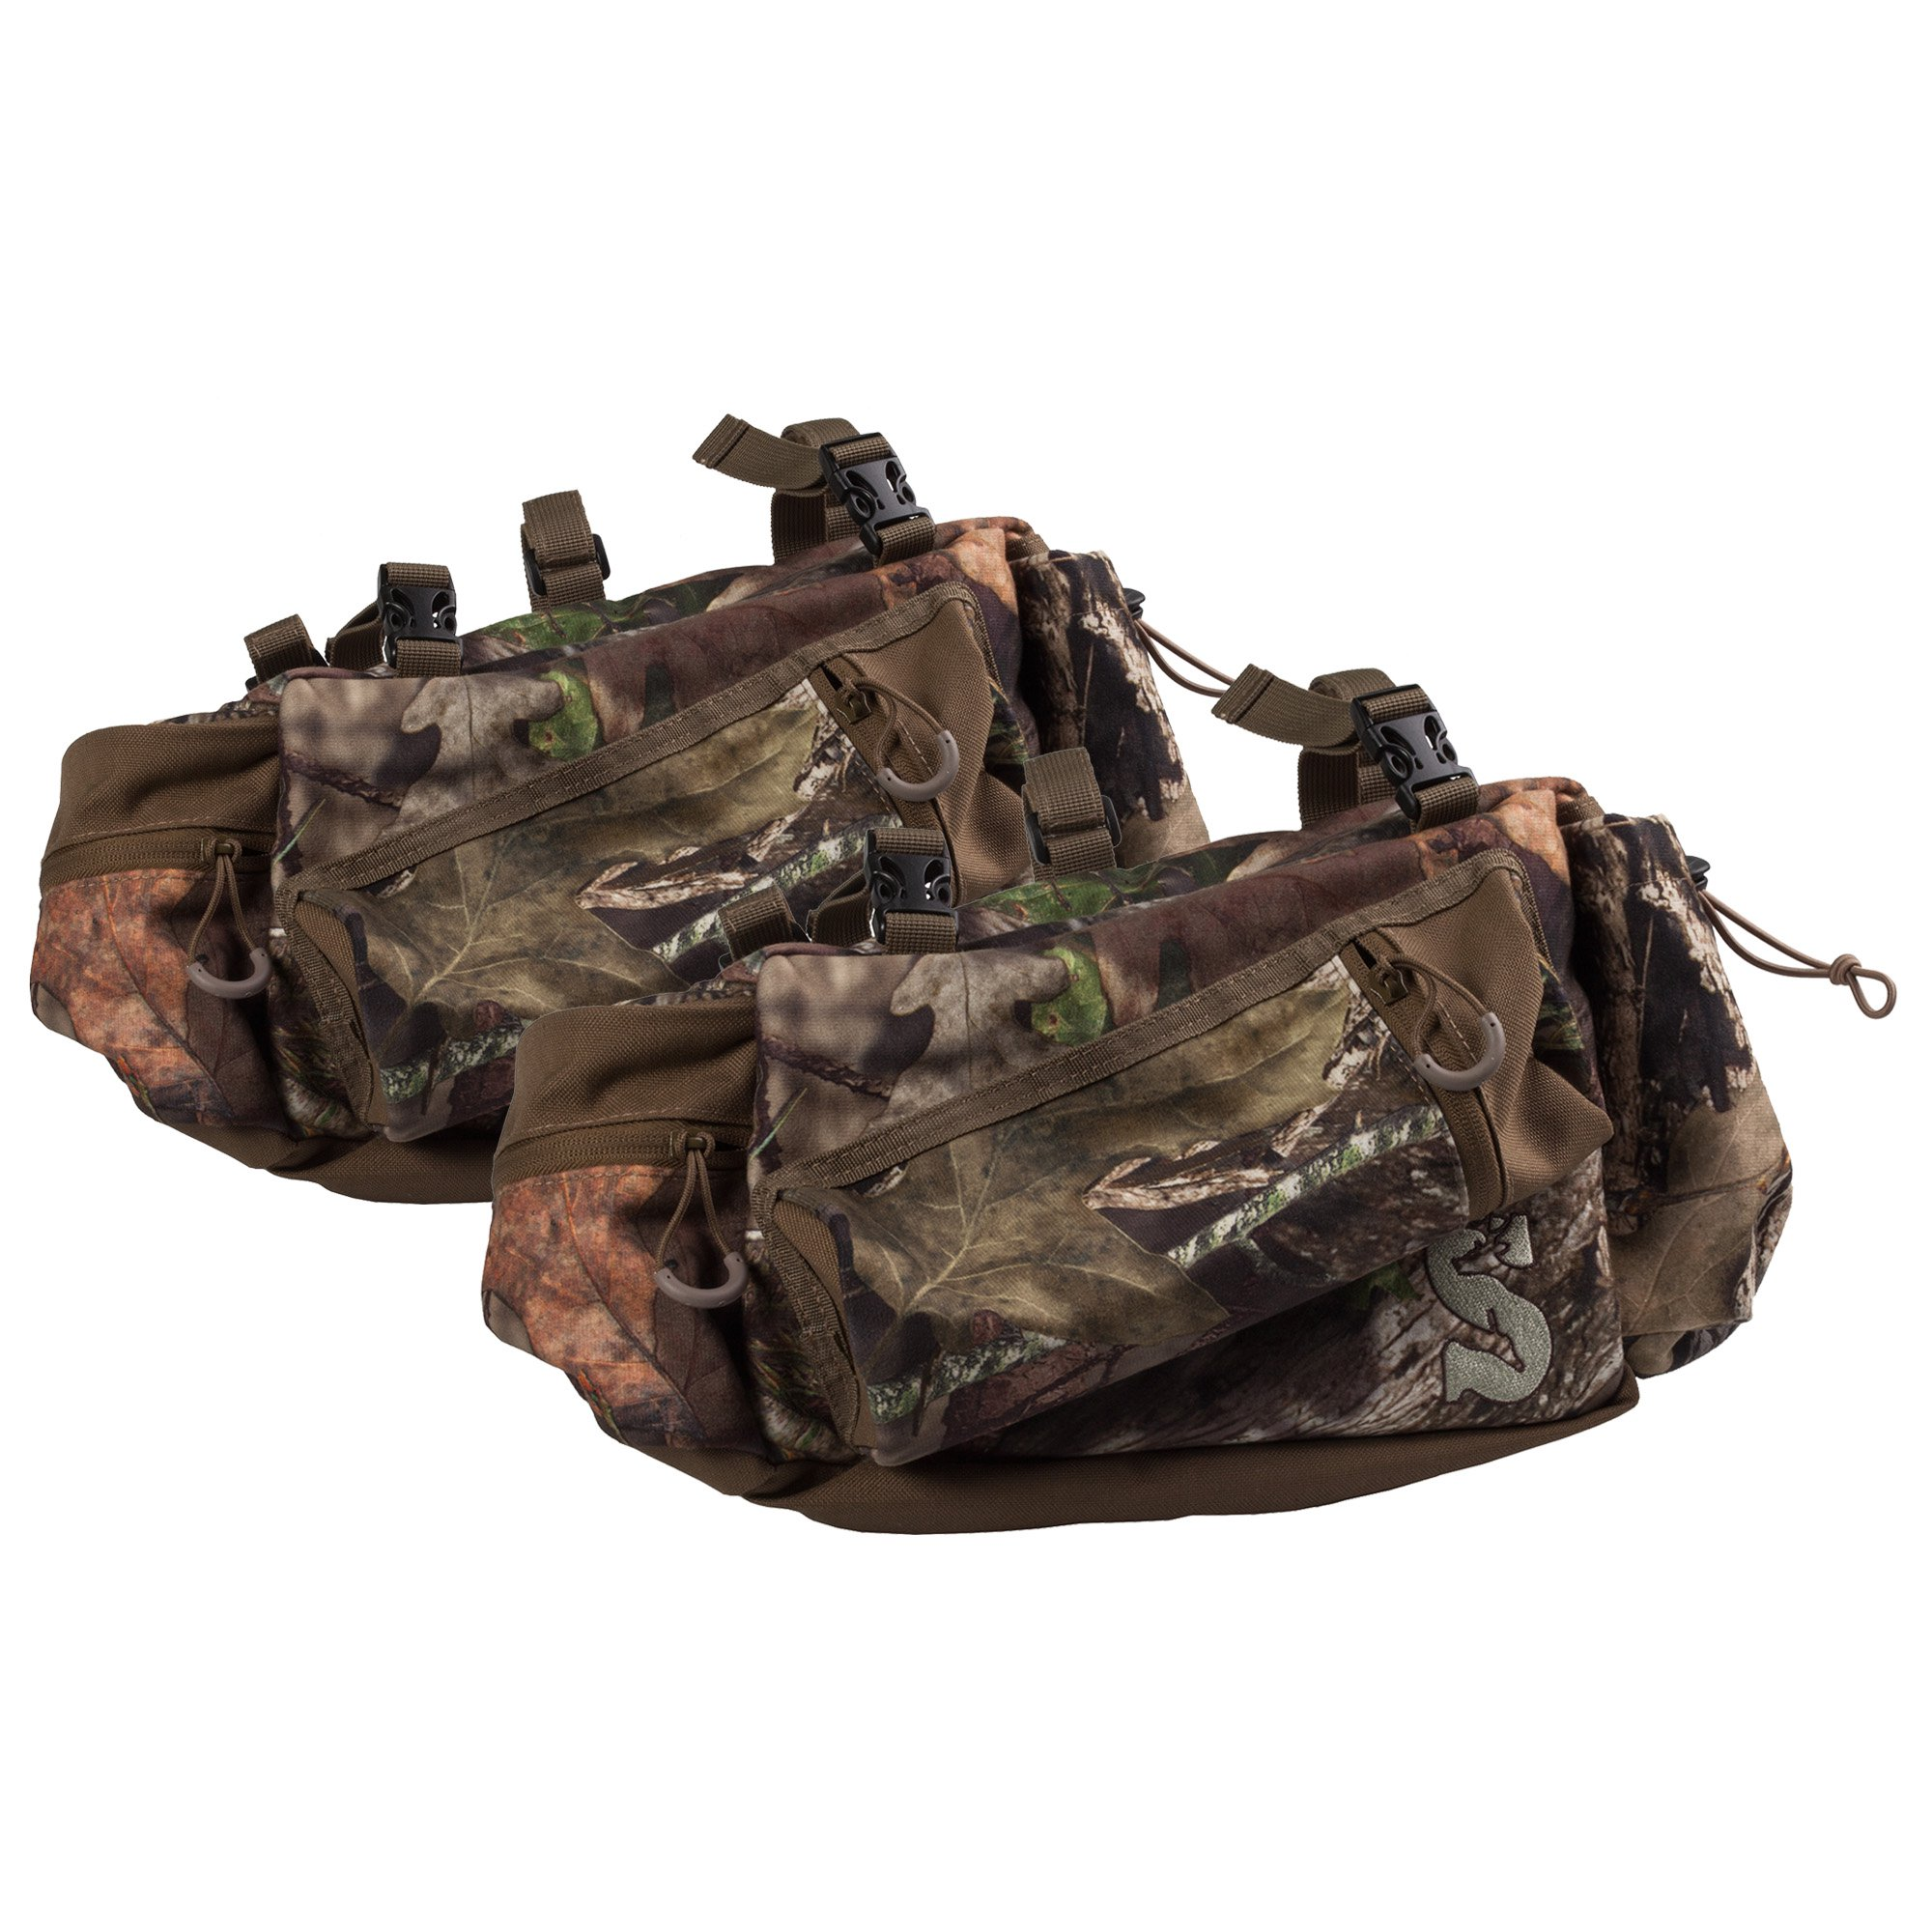 Summit Deluxe Mossy Oak Camo Tree Stand Hunting Gear Storage Side Bag, Pair by Summit